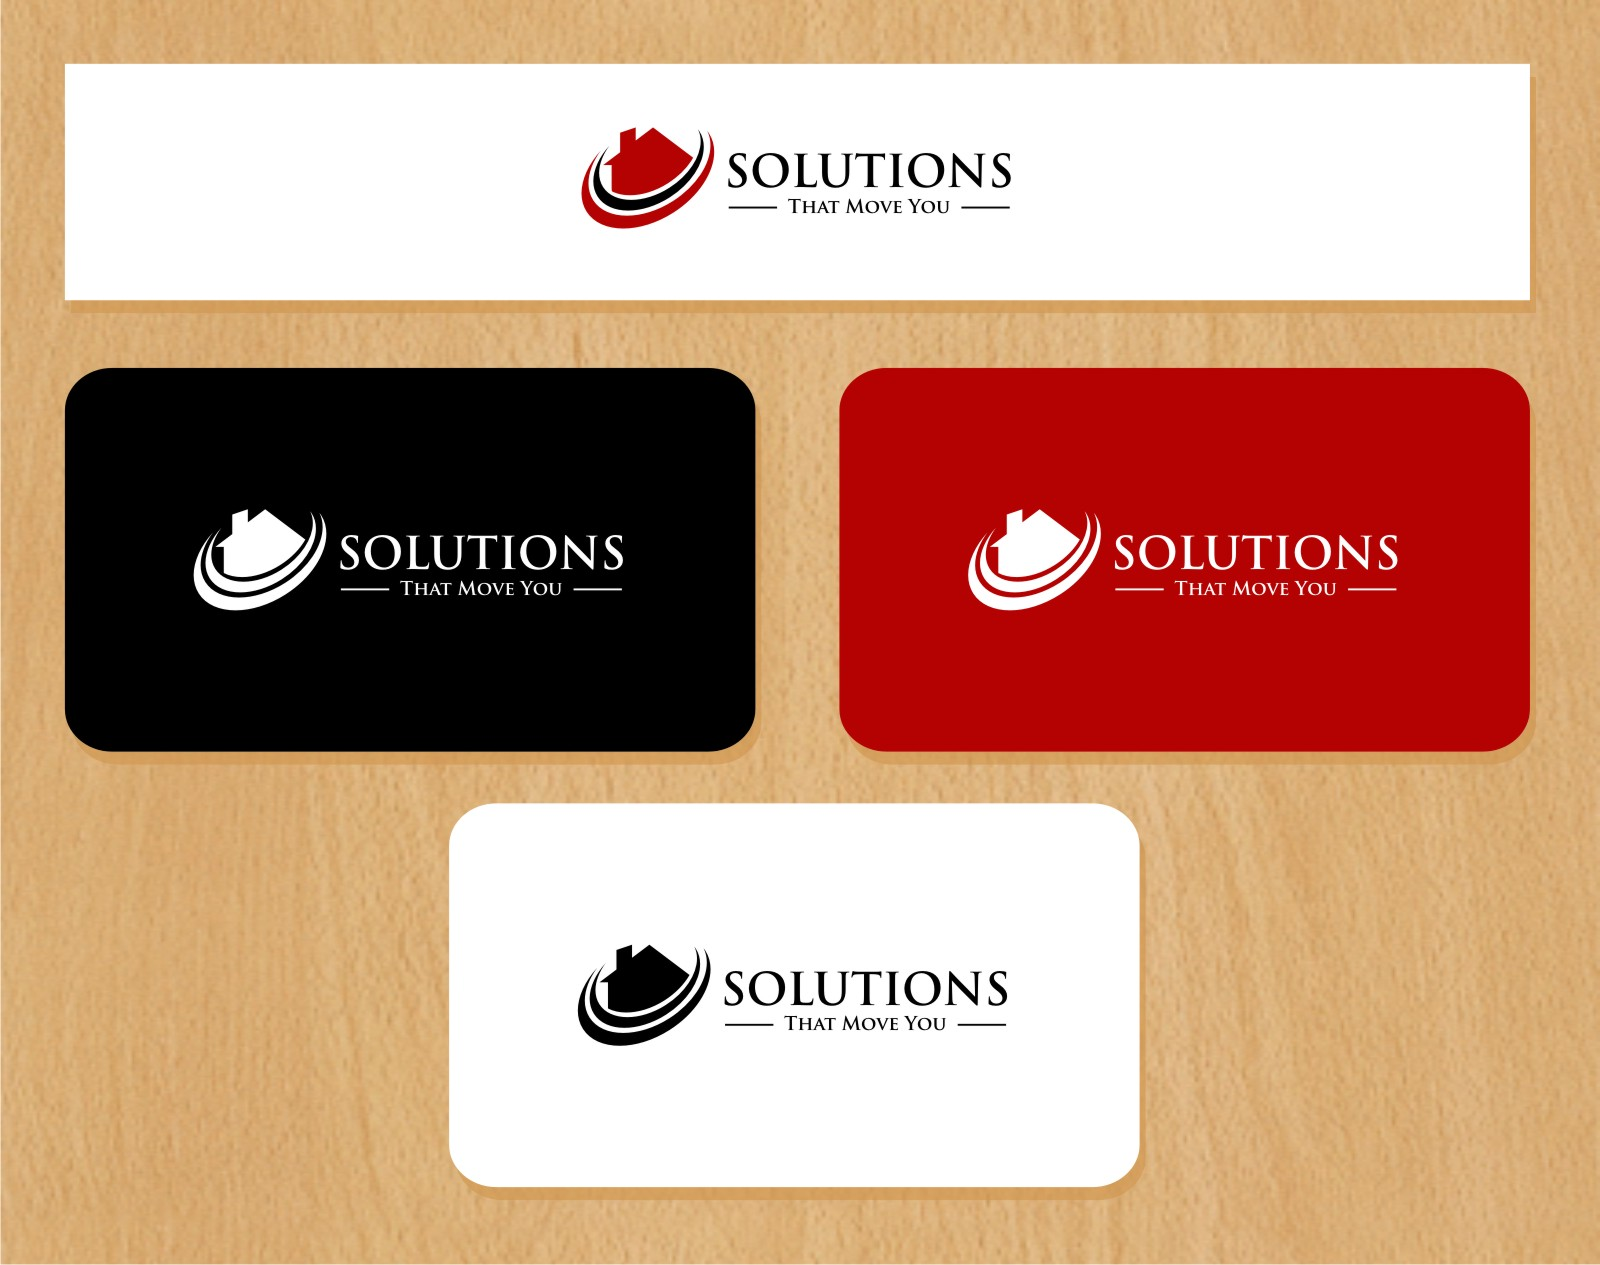 Logo Design by untung - Entry No. 150 in the Logo Design Contest Imaginative Logo Design for Solutions That Move You.